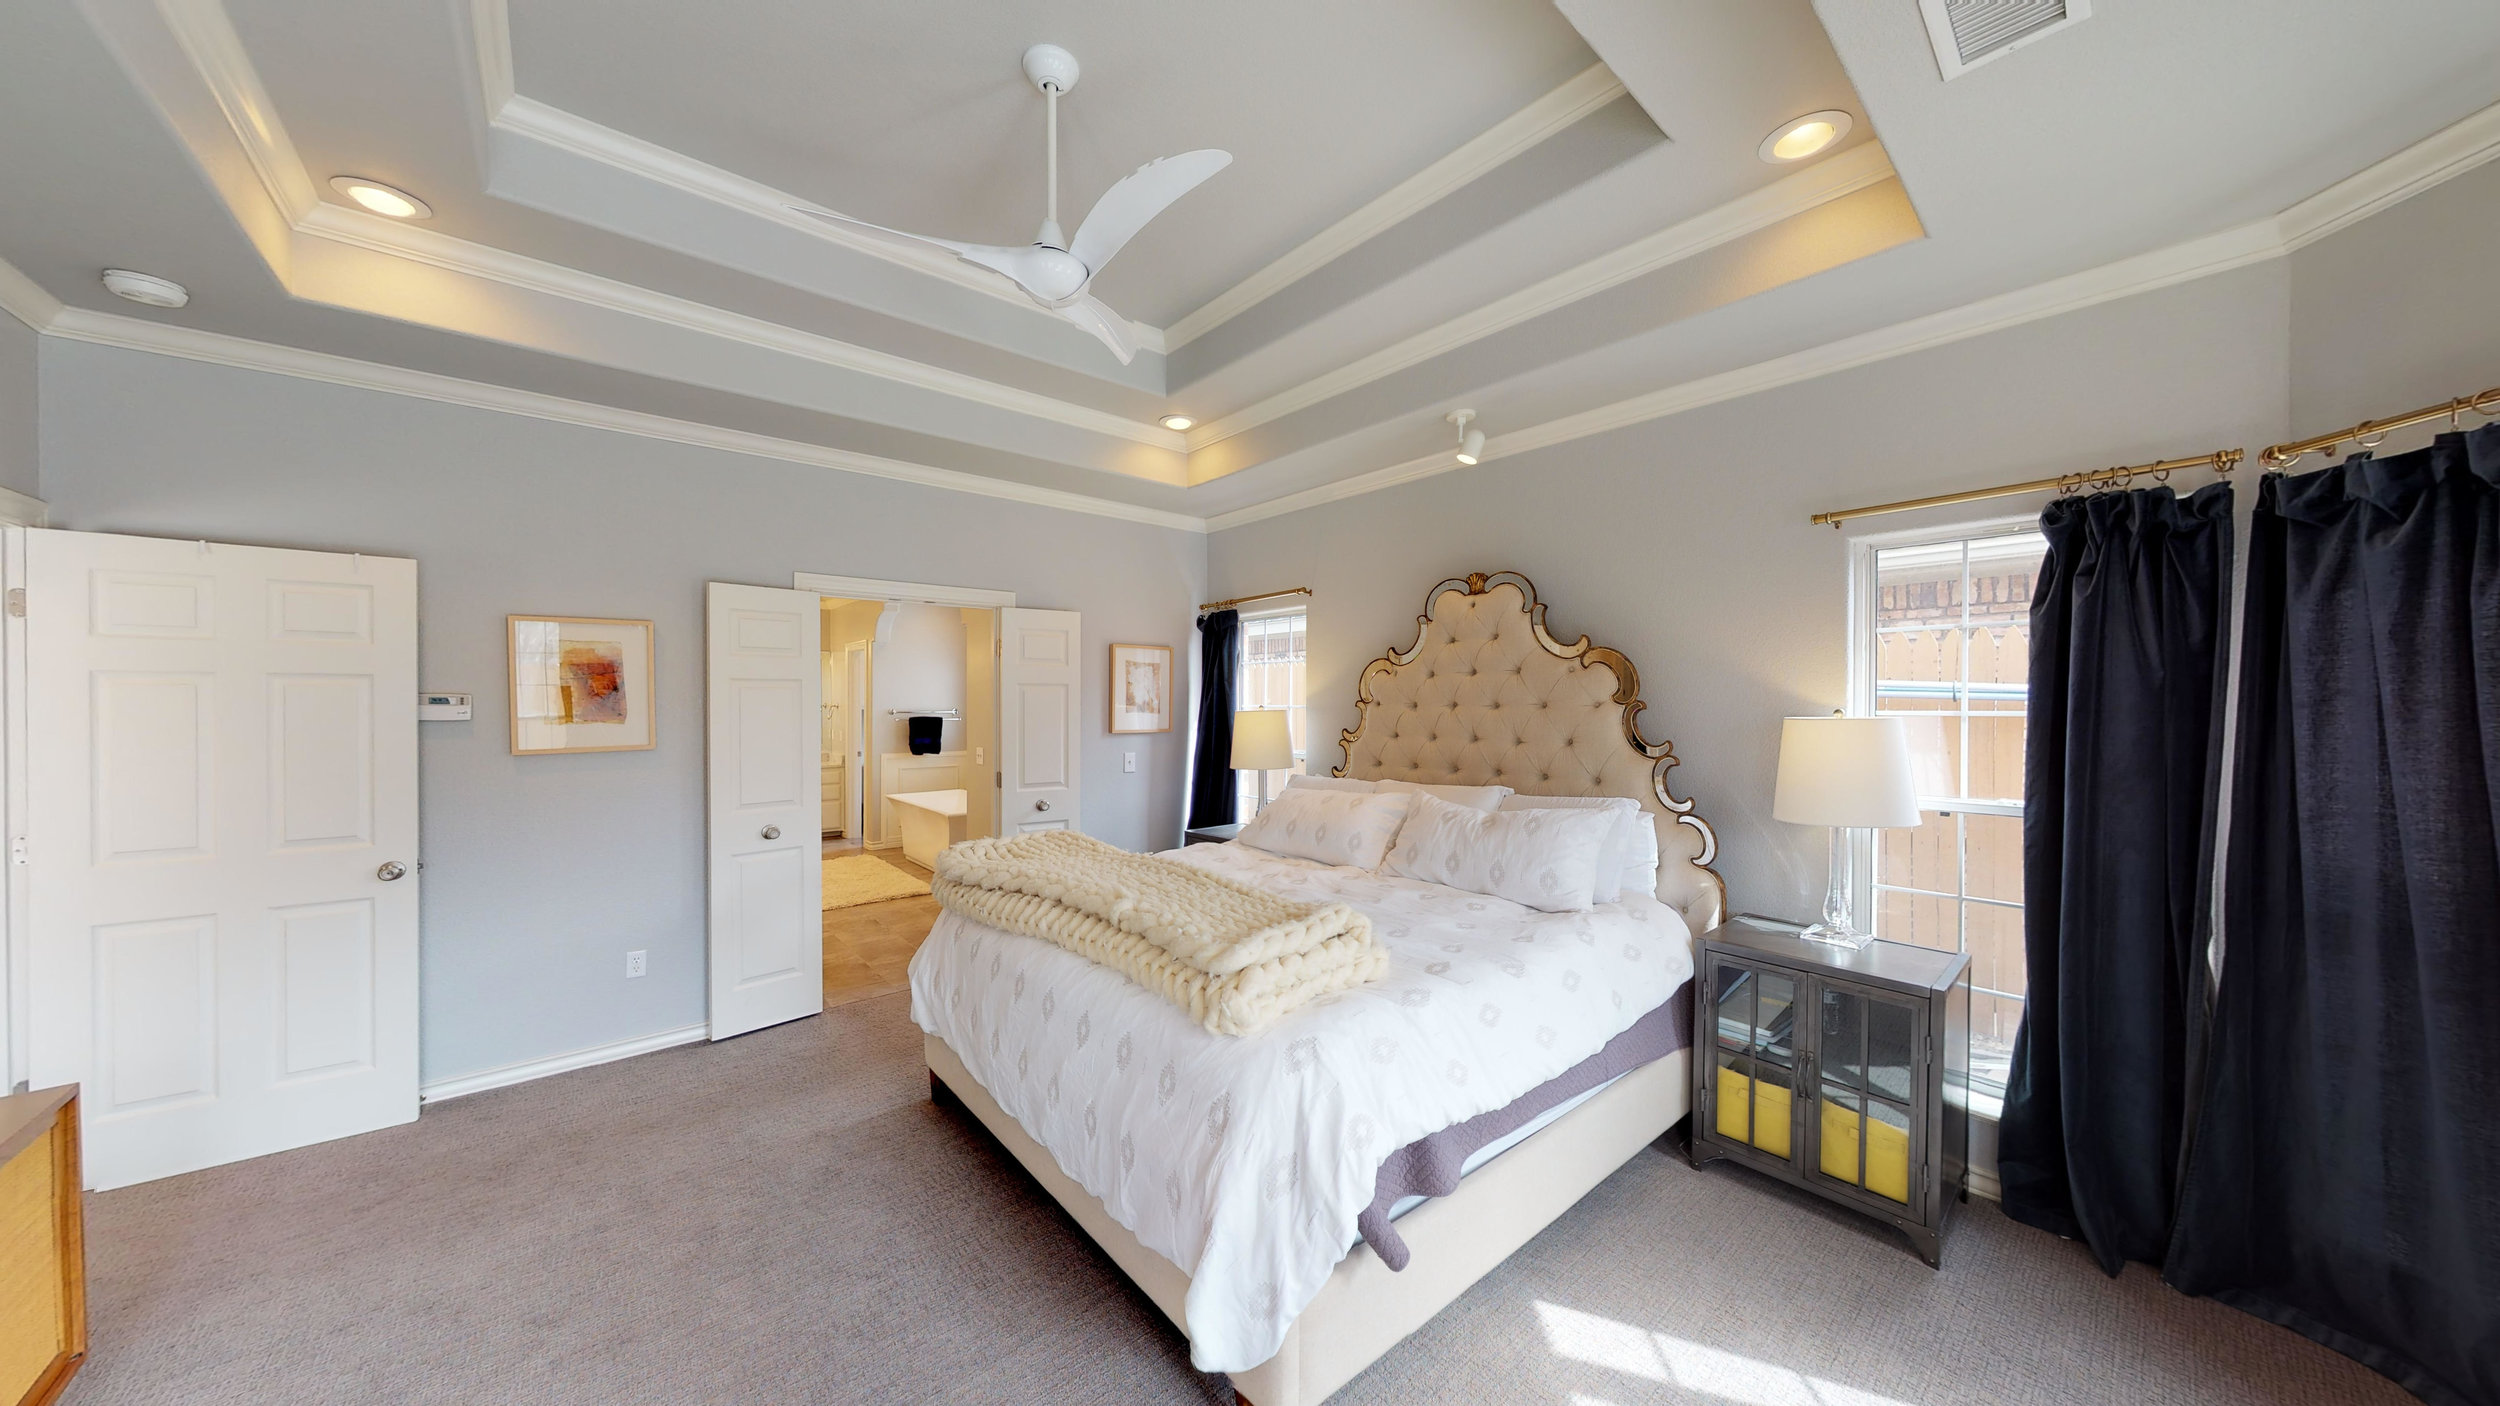 4502-Ashville-Place-Amarillo-TX-79119-Master-Bedroom-2.jpg